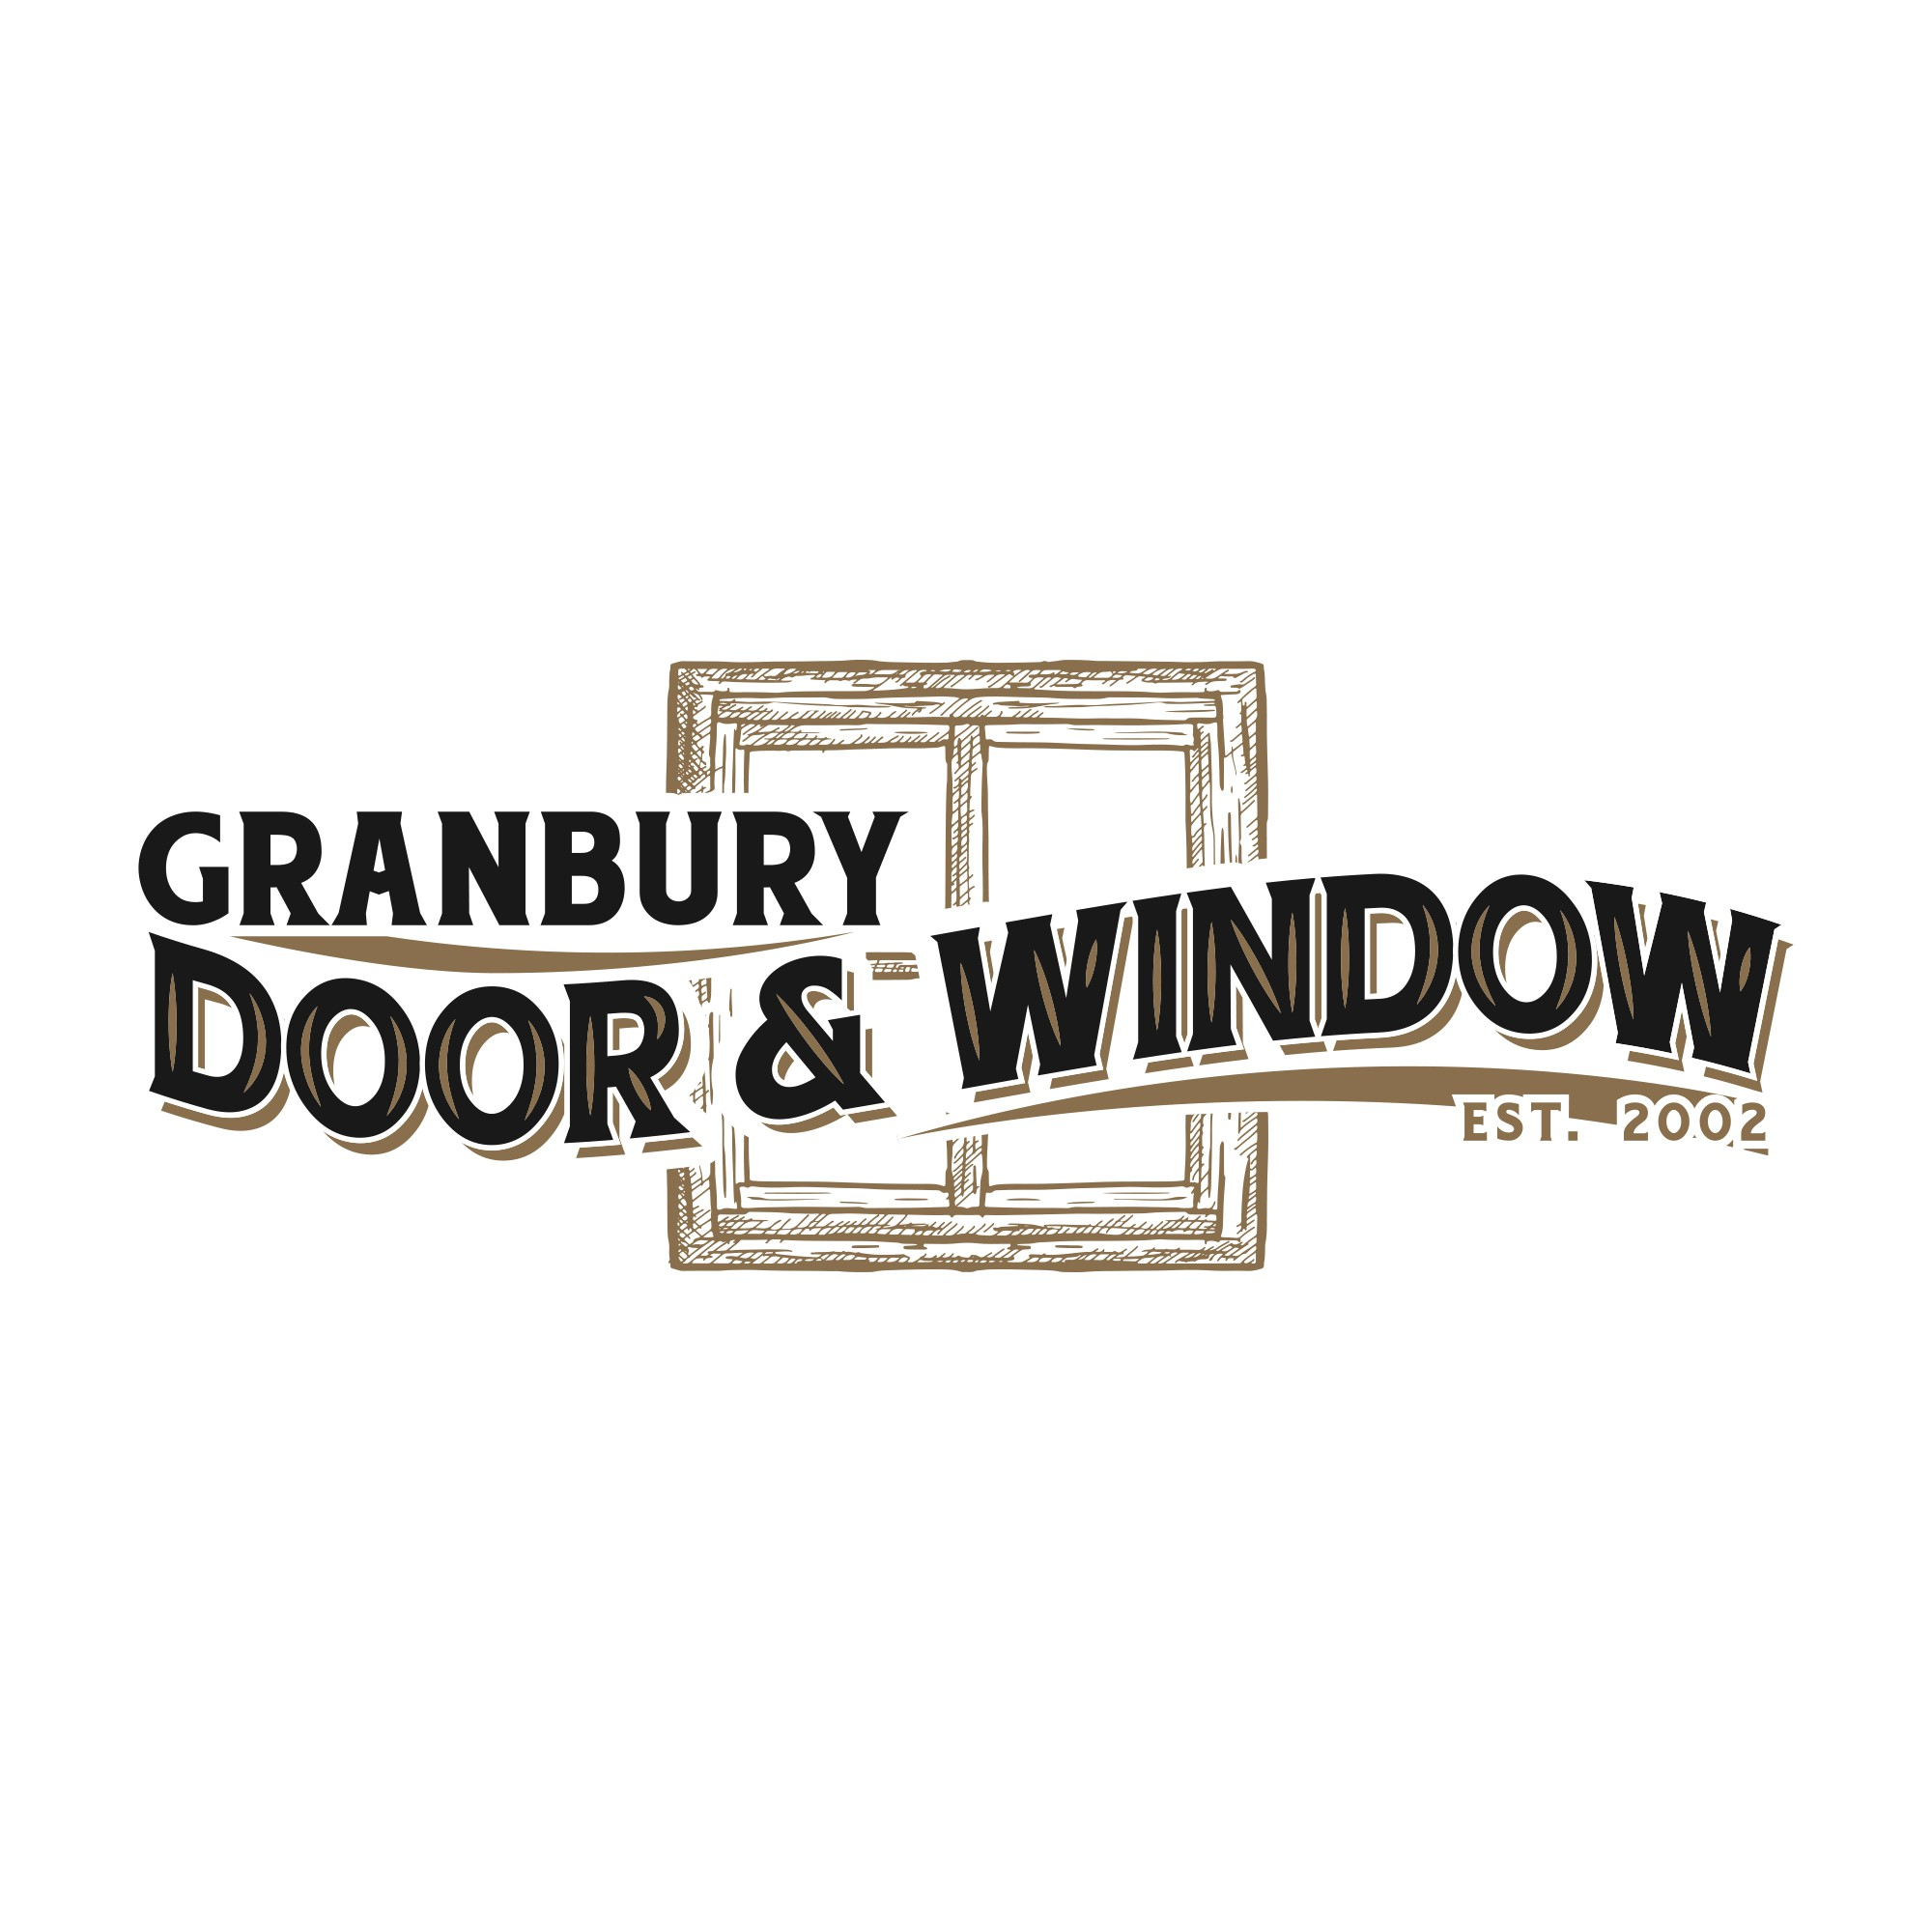 Wanted: New Logo for Door and Window company.